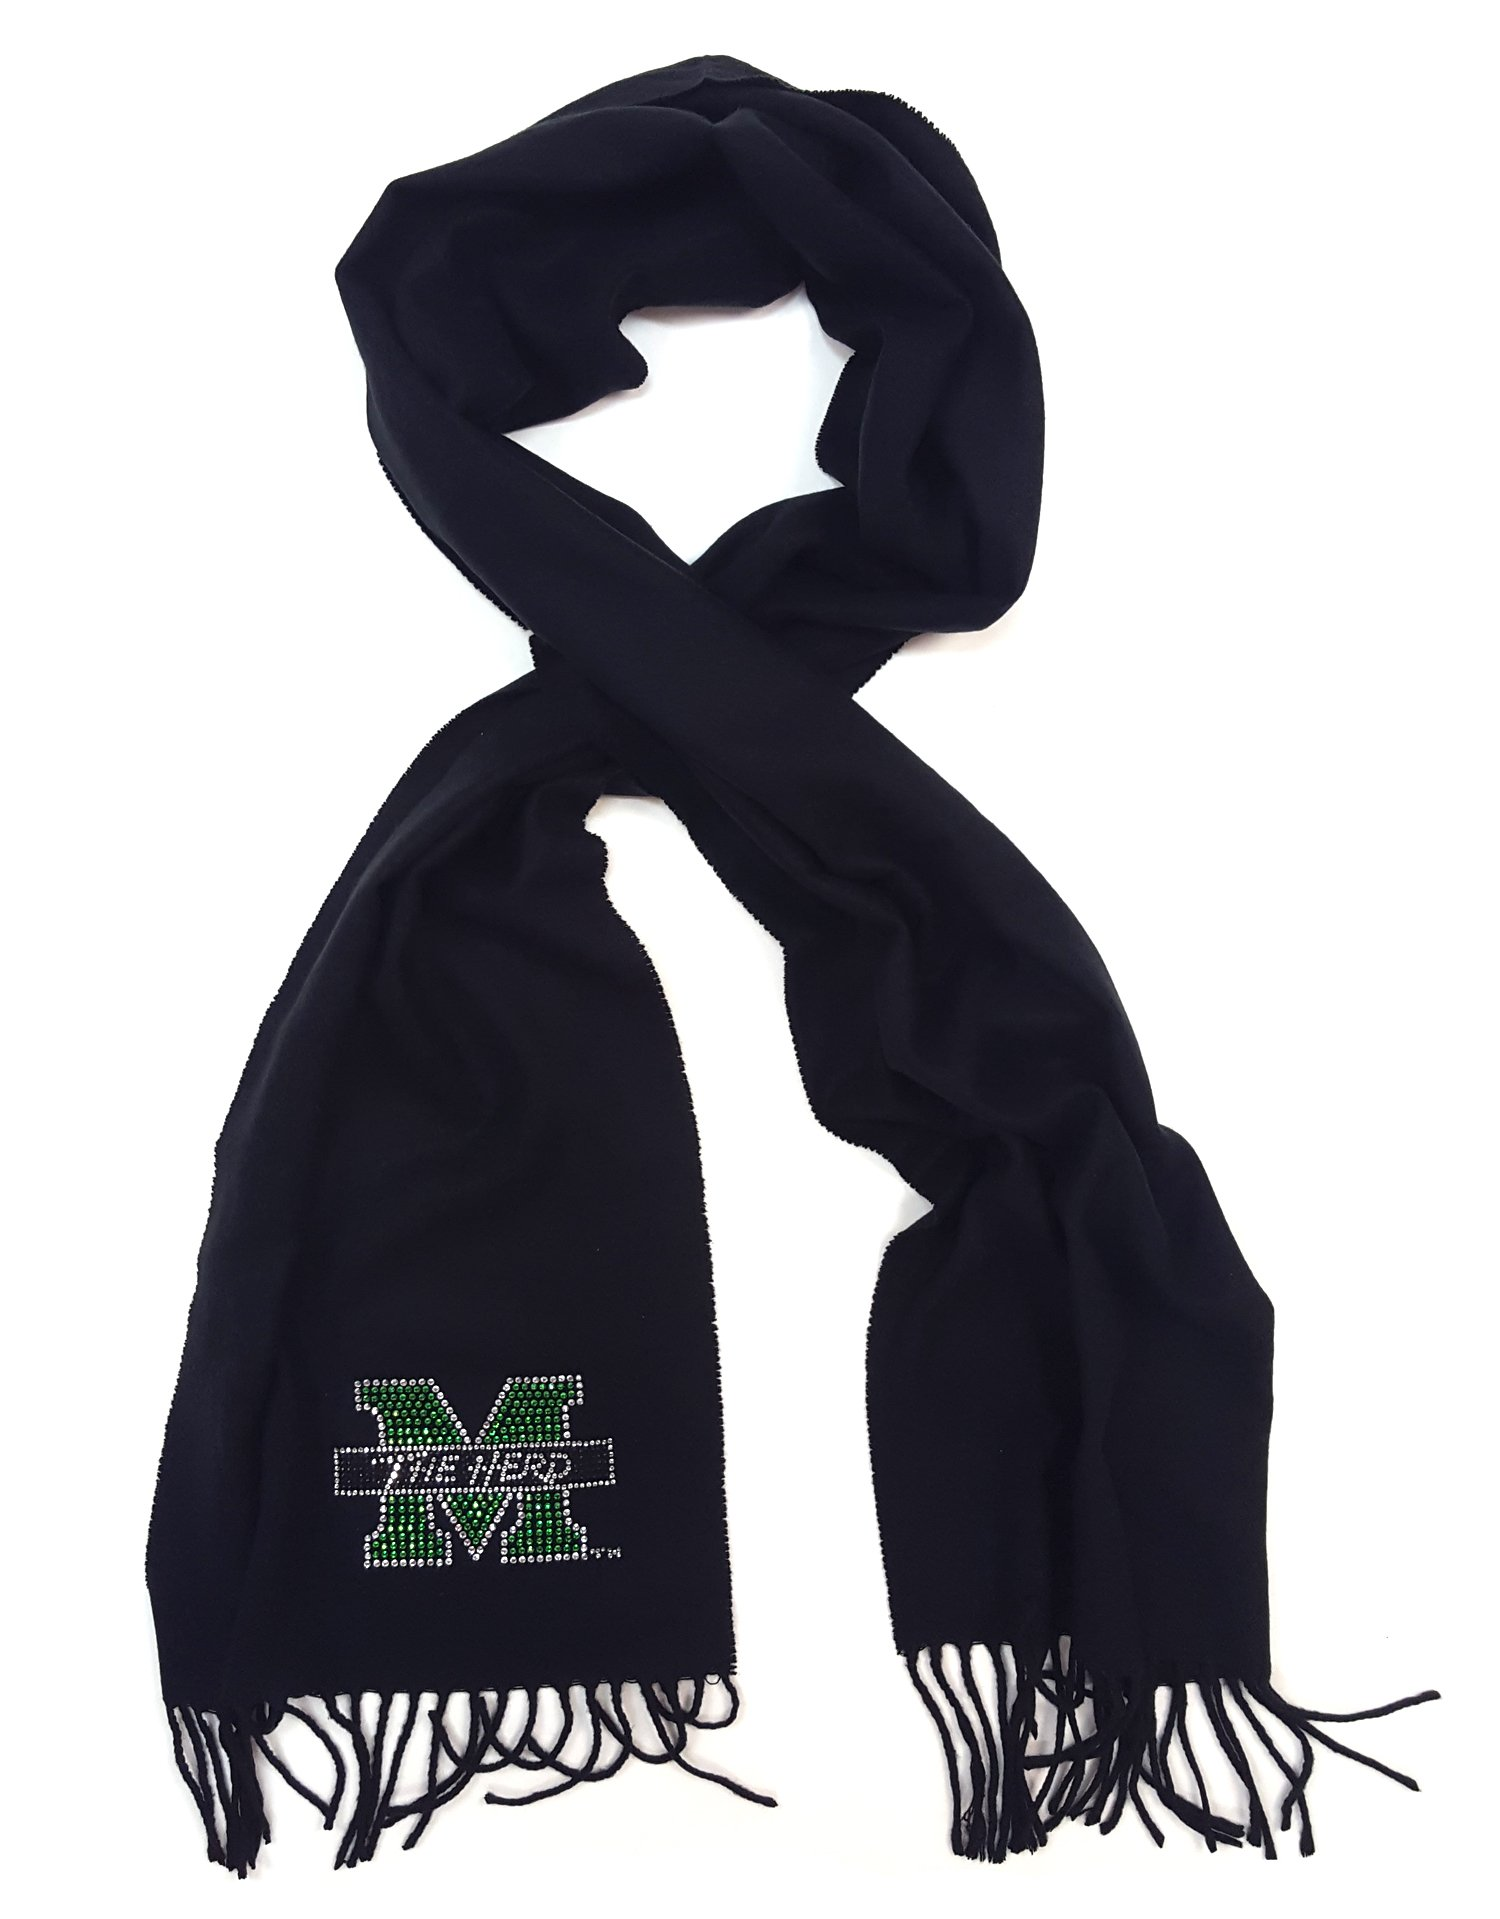 Nitro USA Fringed Cashmere Feel Scarf with Small M with The Herd bar, One Size, Black